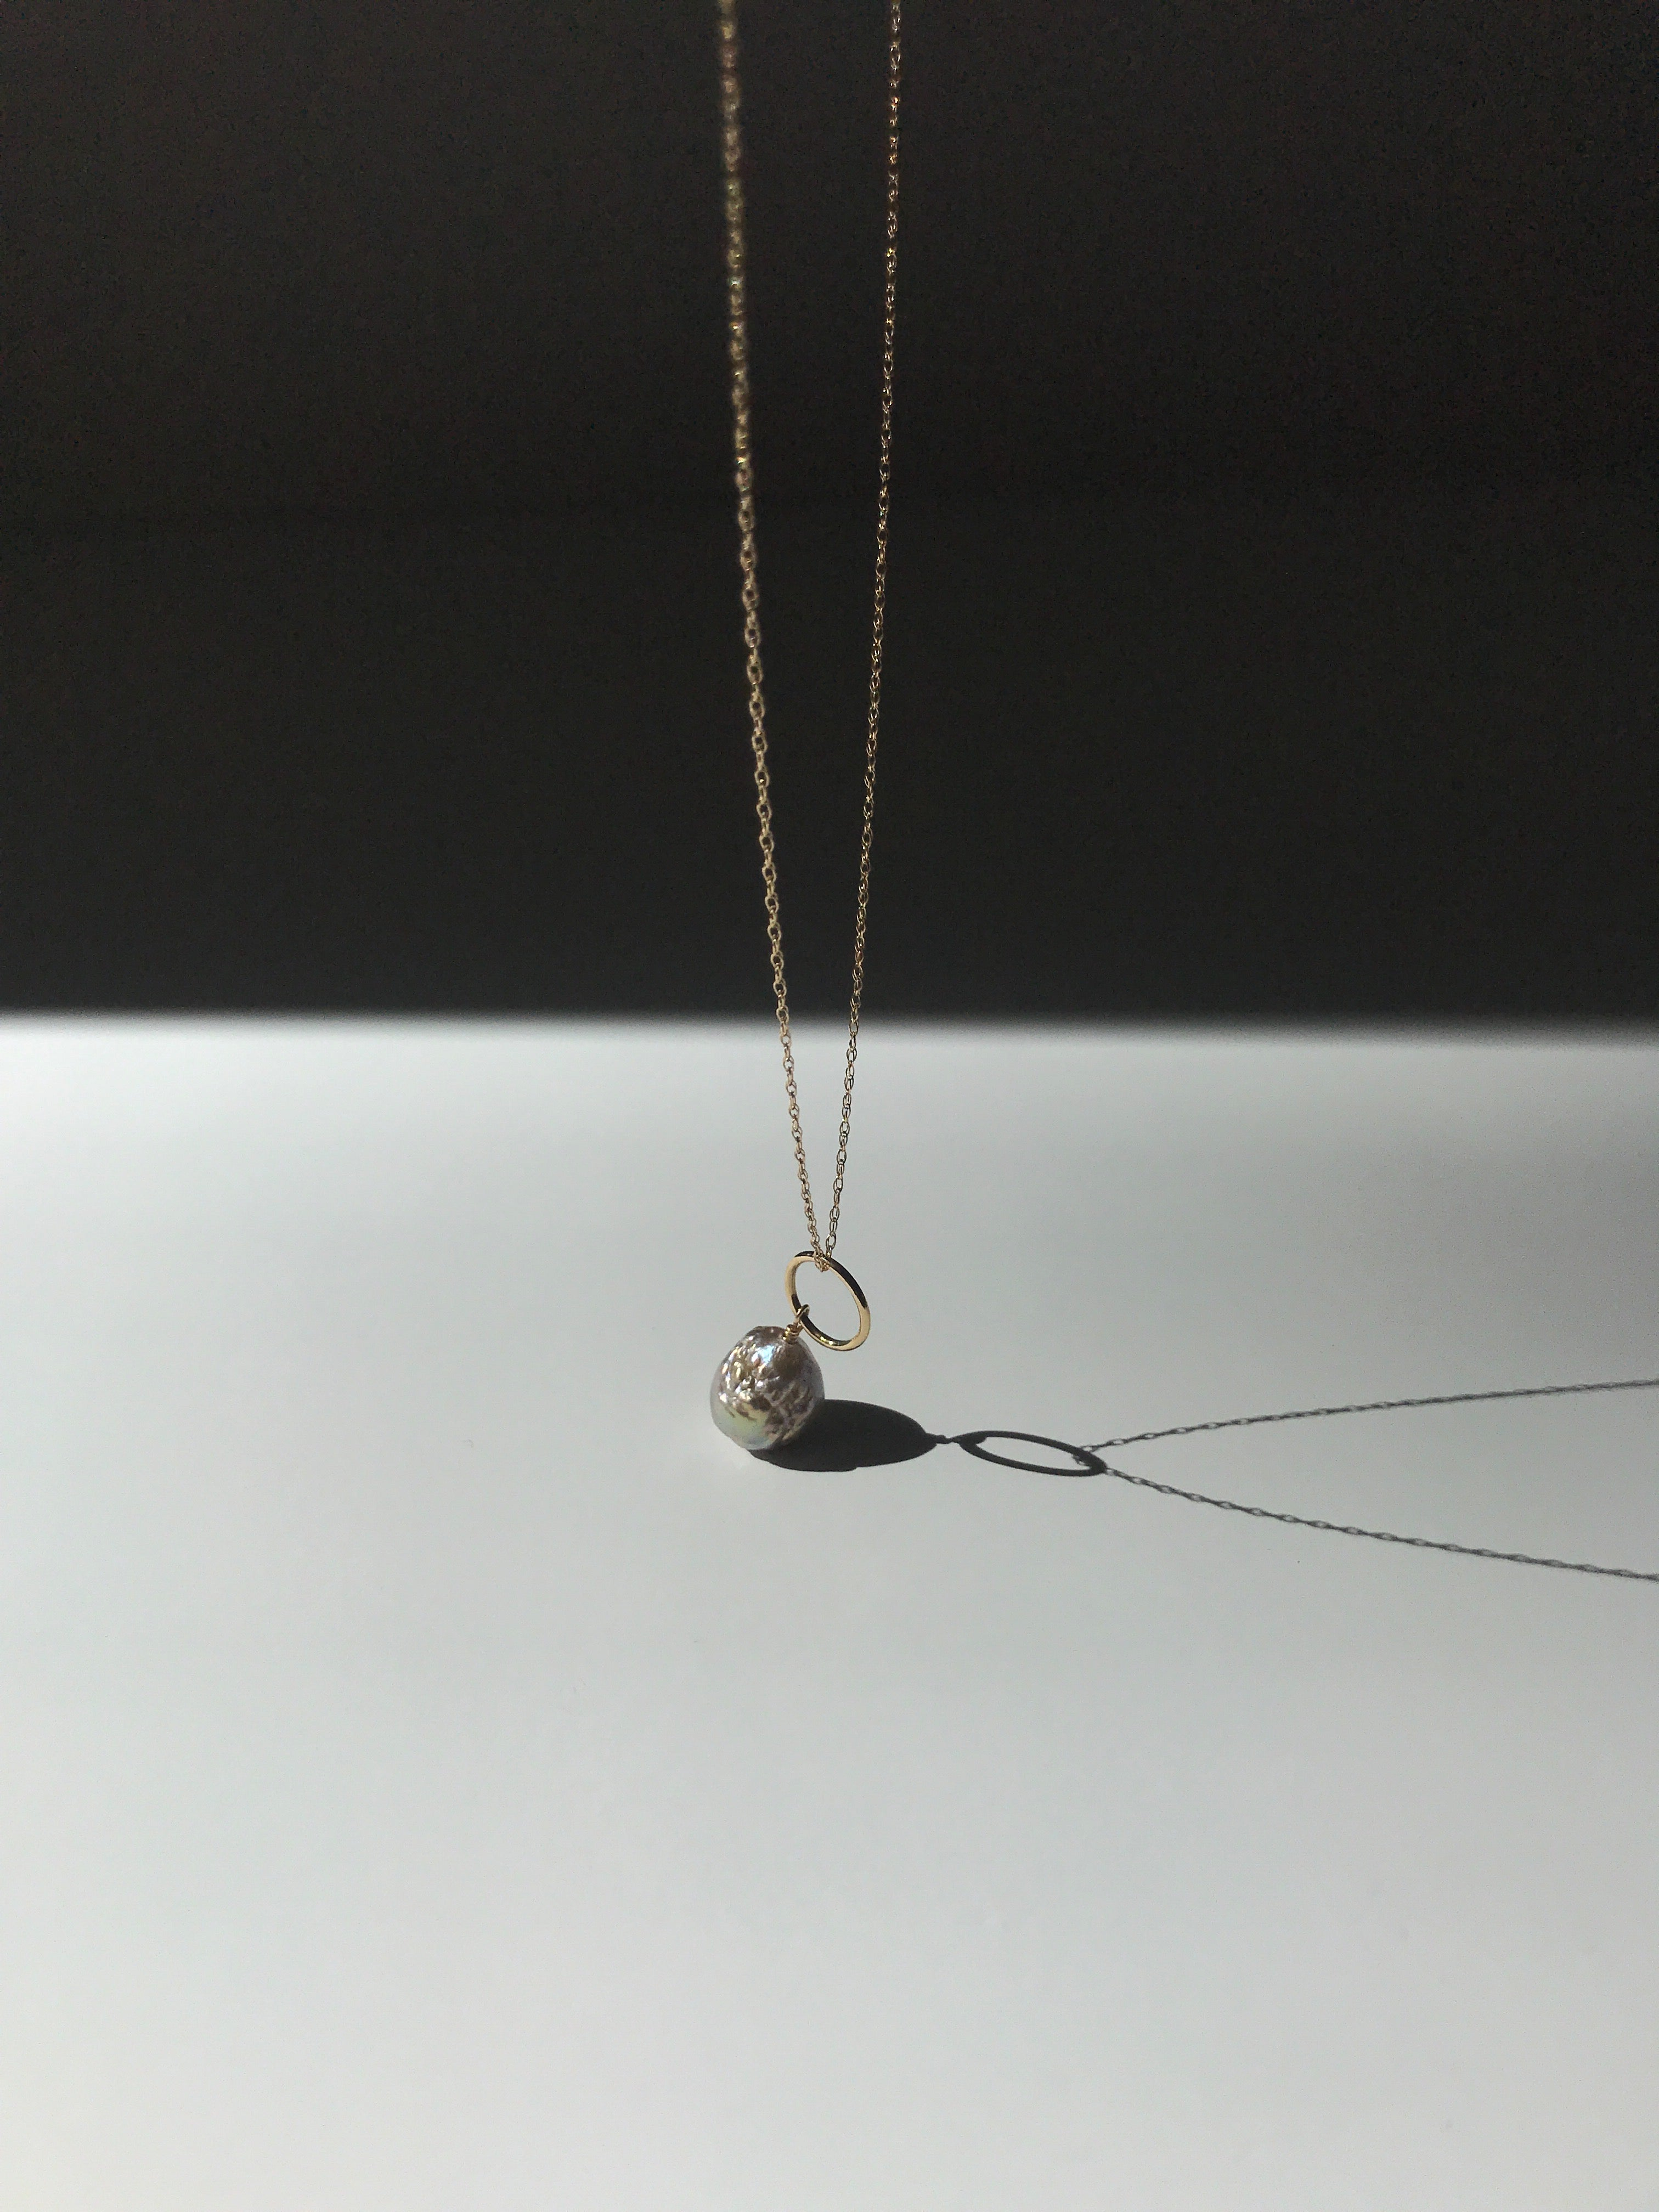 Stellar Necklace with Japan Kasumi Pearl on 14K solid yellow gold fine rope chain